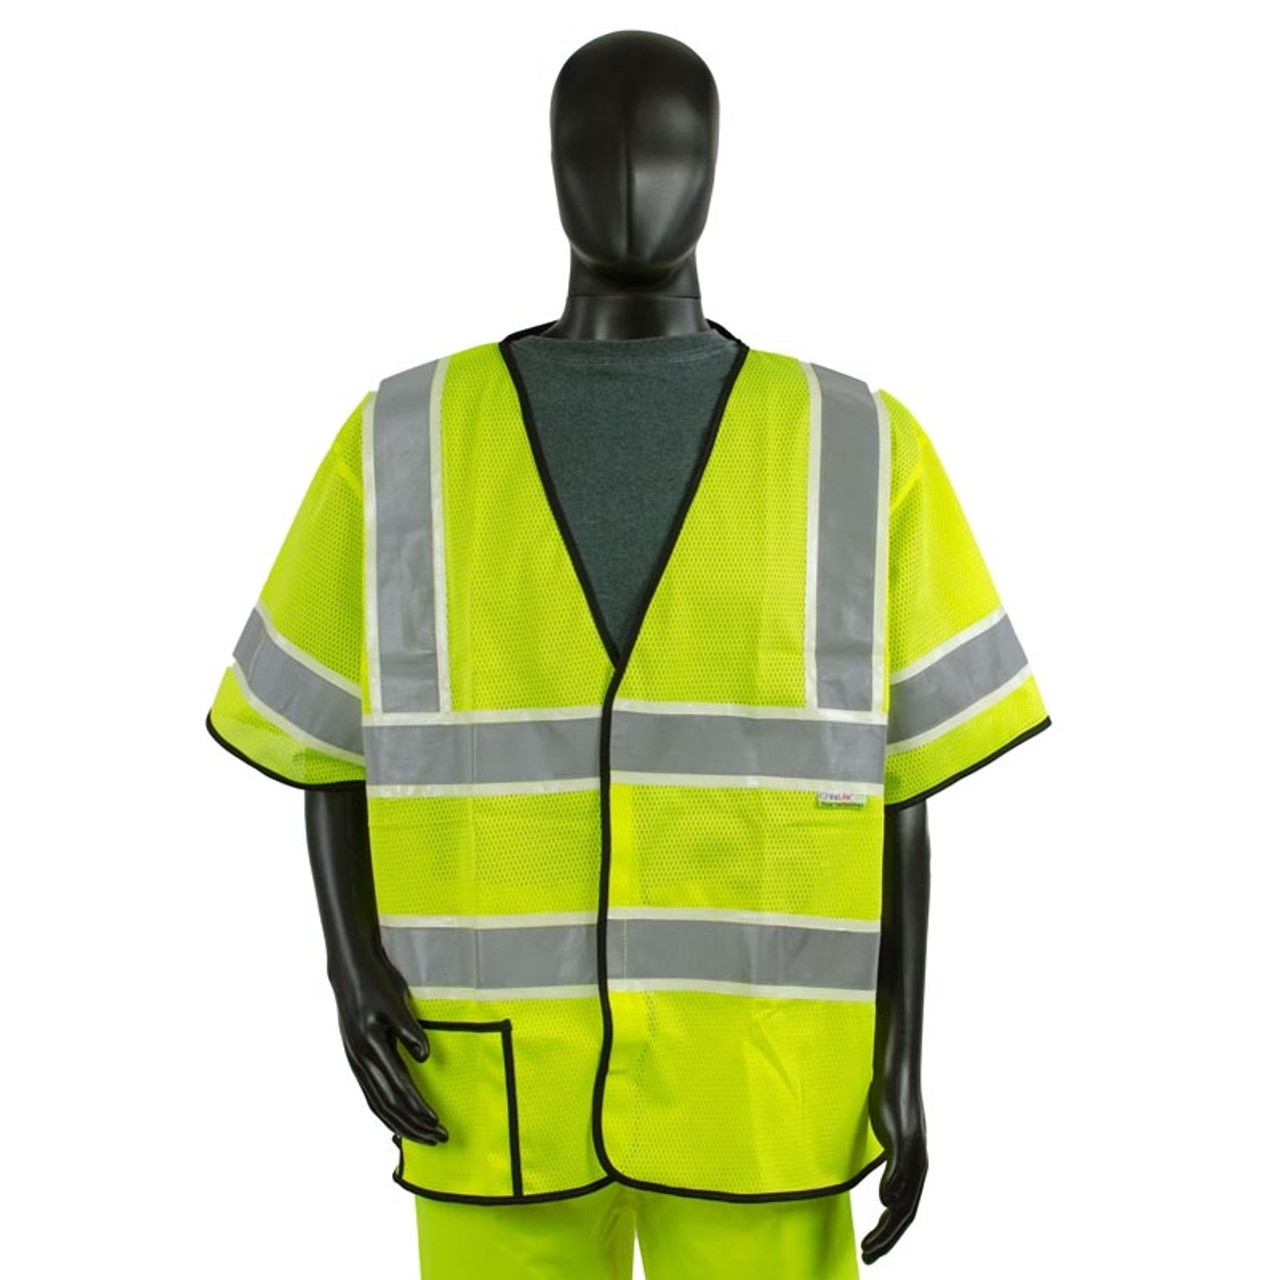 a34c236eaa Alpha Workwear Class 3 Hi Vis Illuminated Glow in the Dark Safety Vest A220  Front